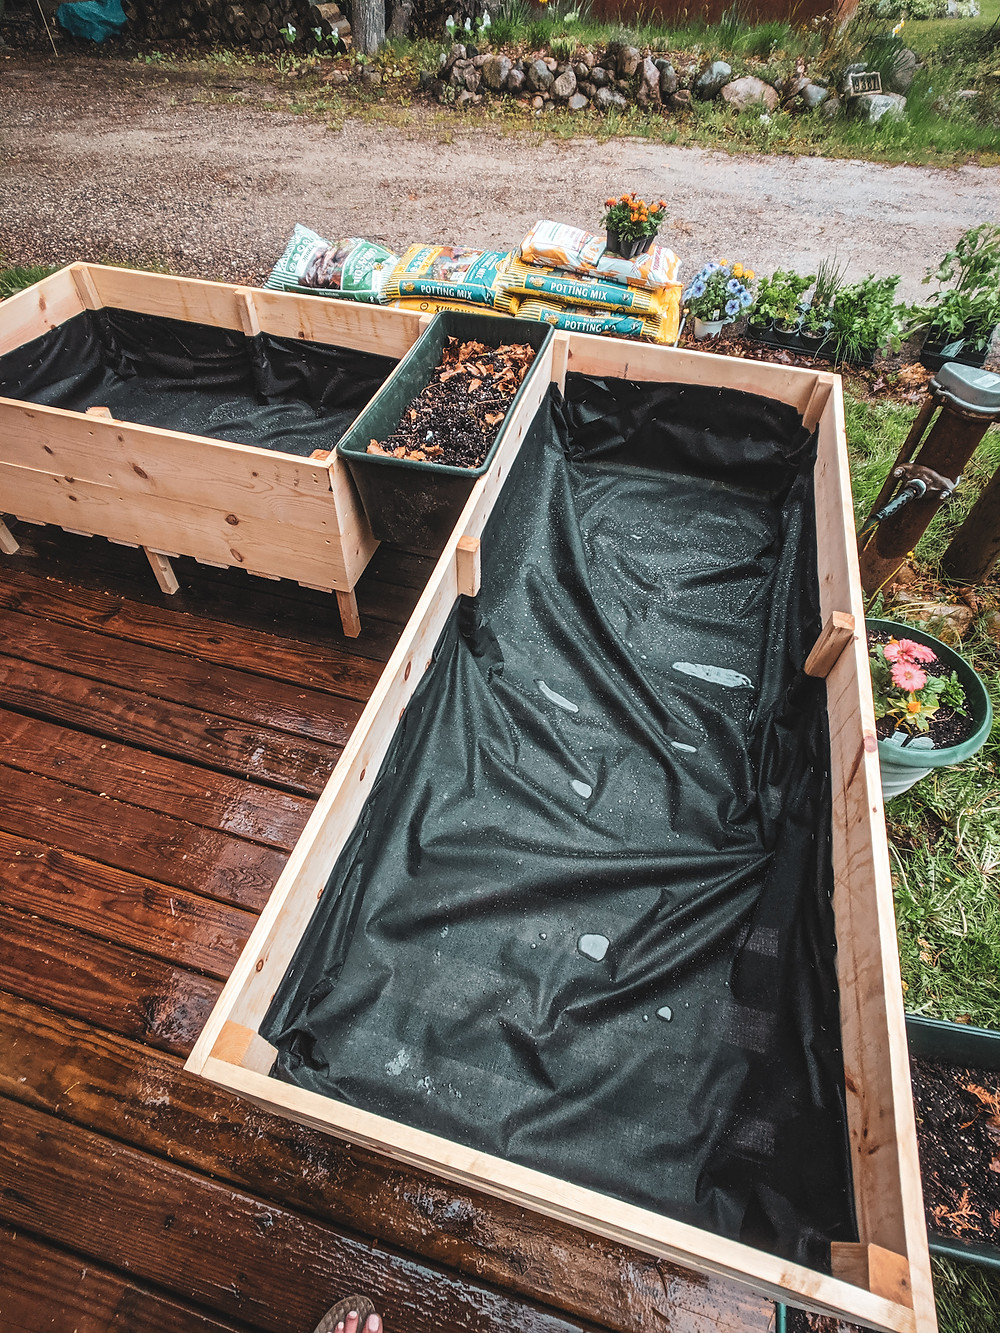 The finished DIY raised garden beds perfect for a small space in Northern Michigan. They were designed by Steph Castelein from the Each Day Slow blog.